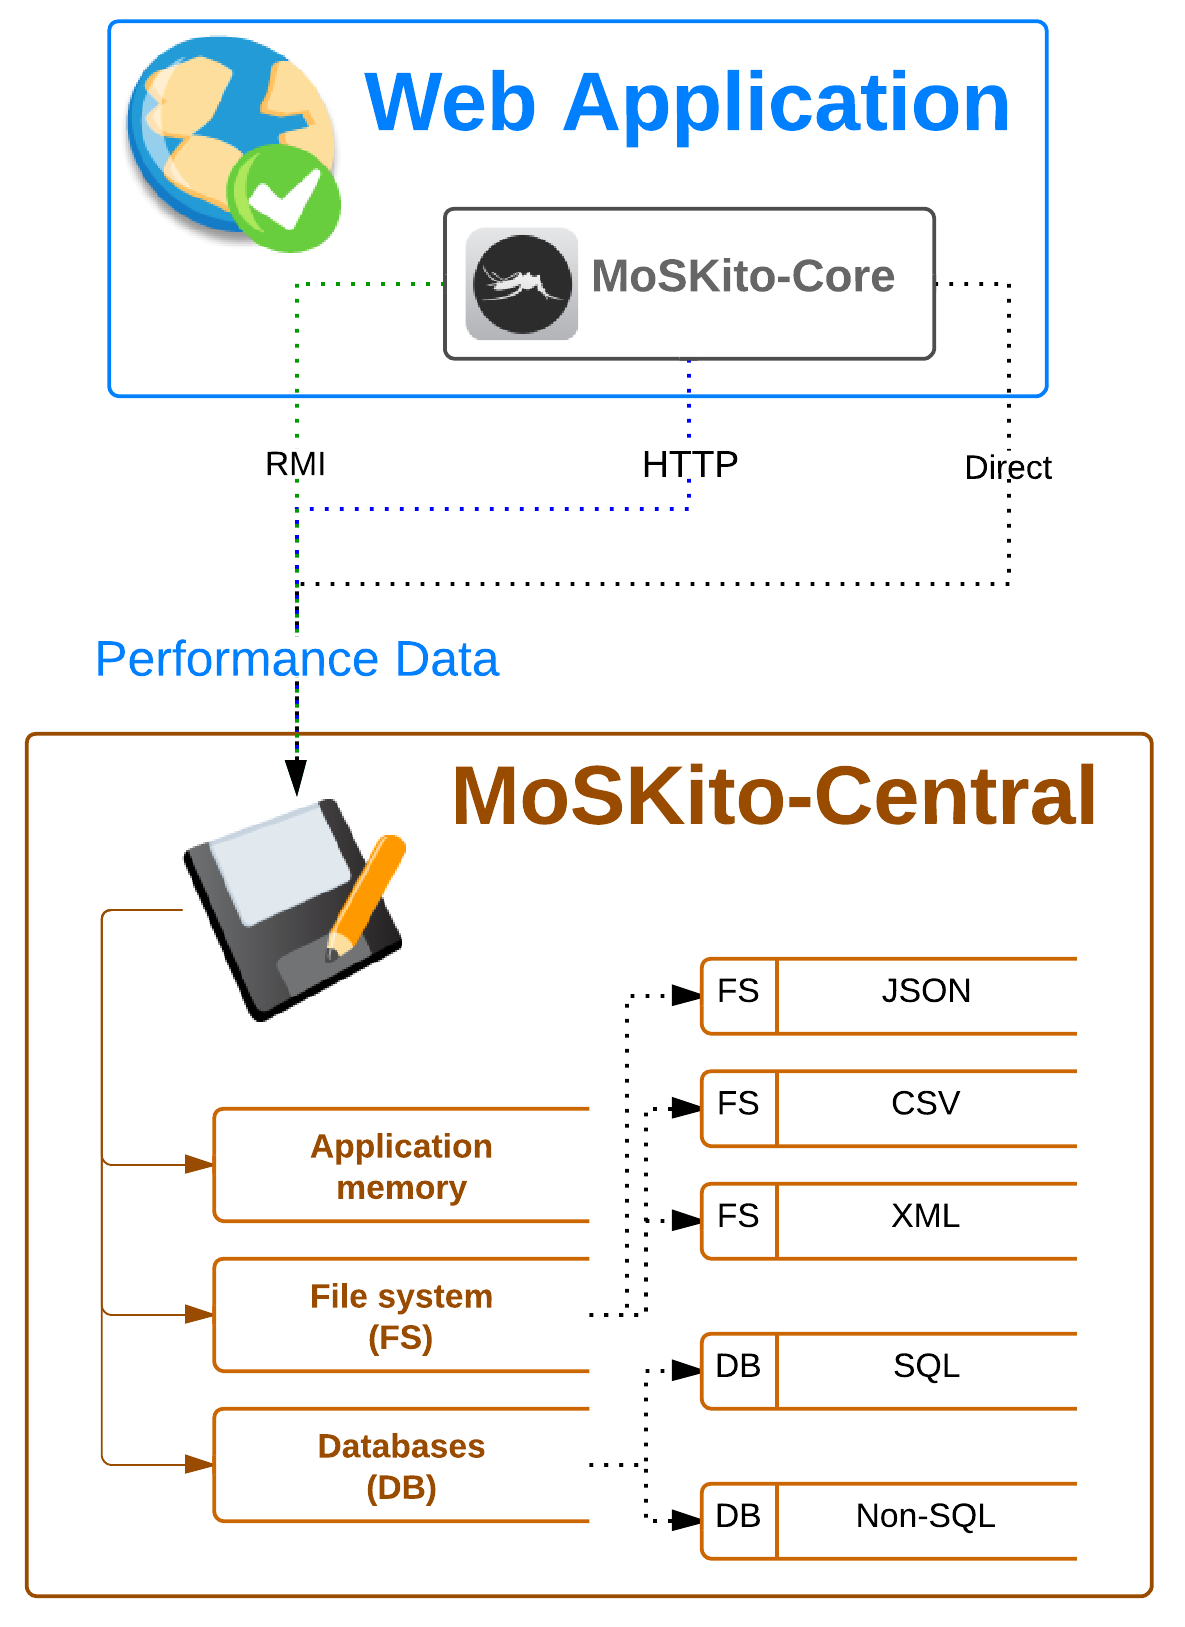 MoSKito-Central Overview